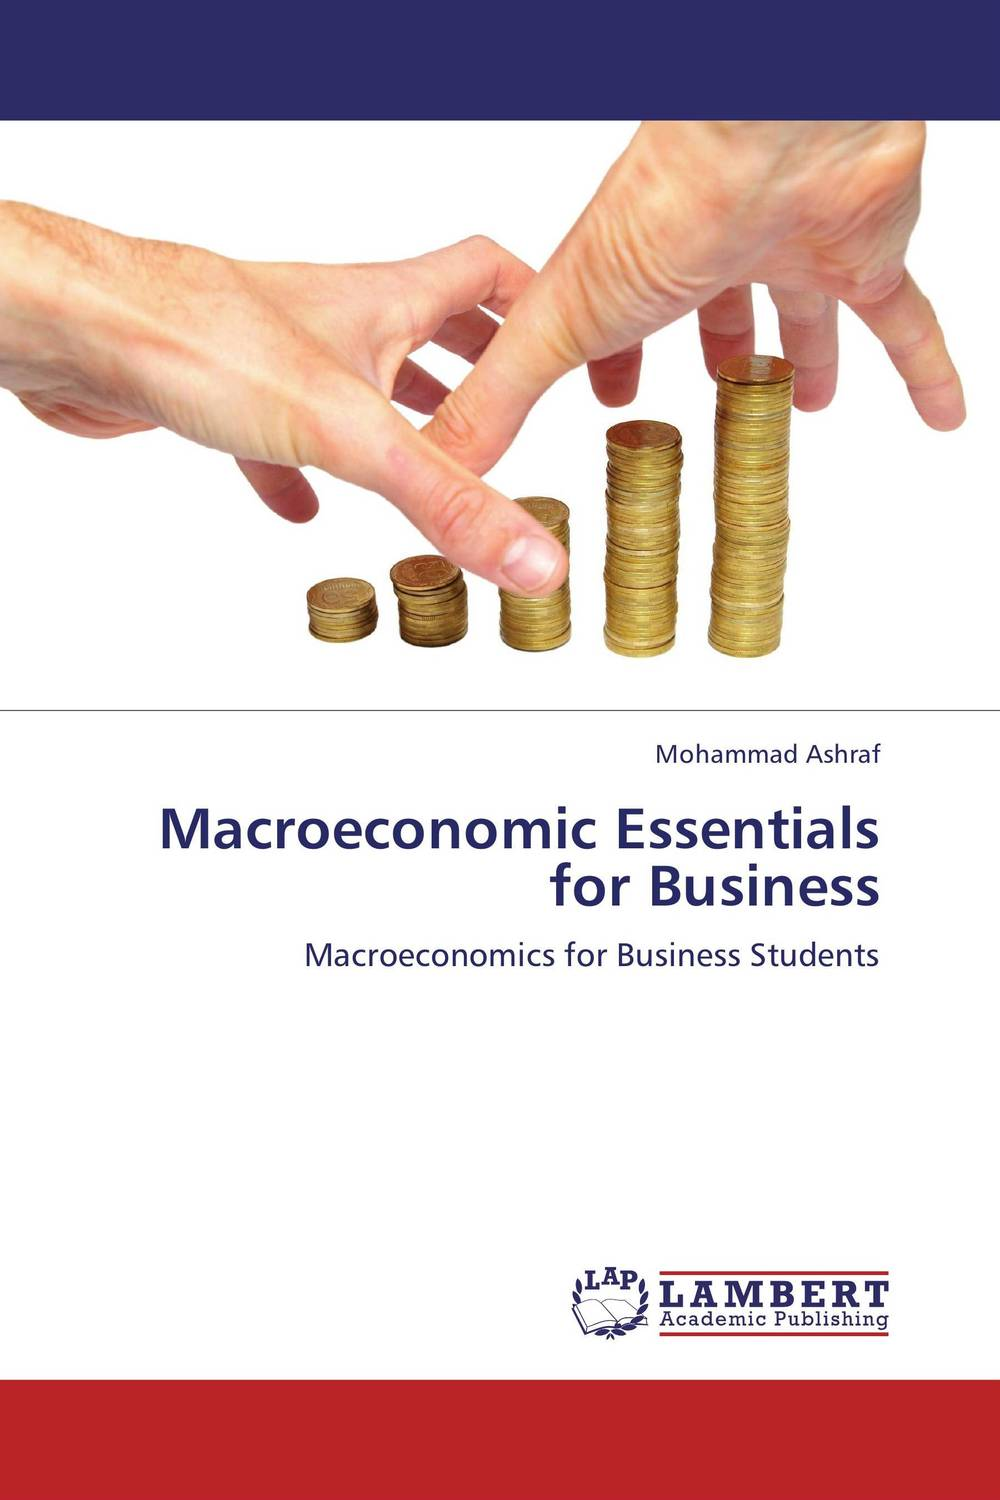 Macroeconomic Essentials for Business